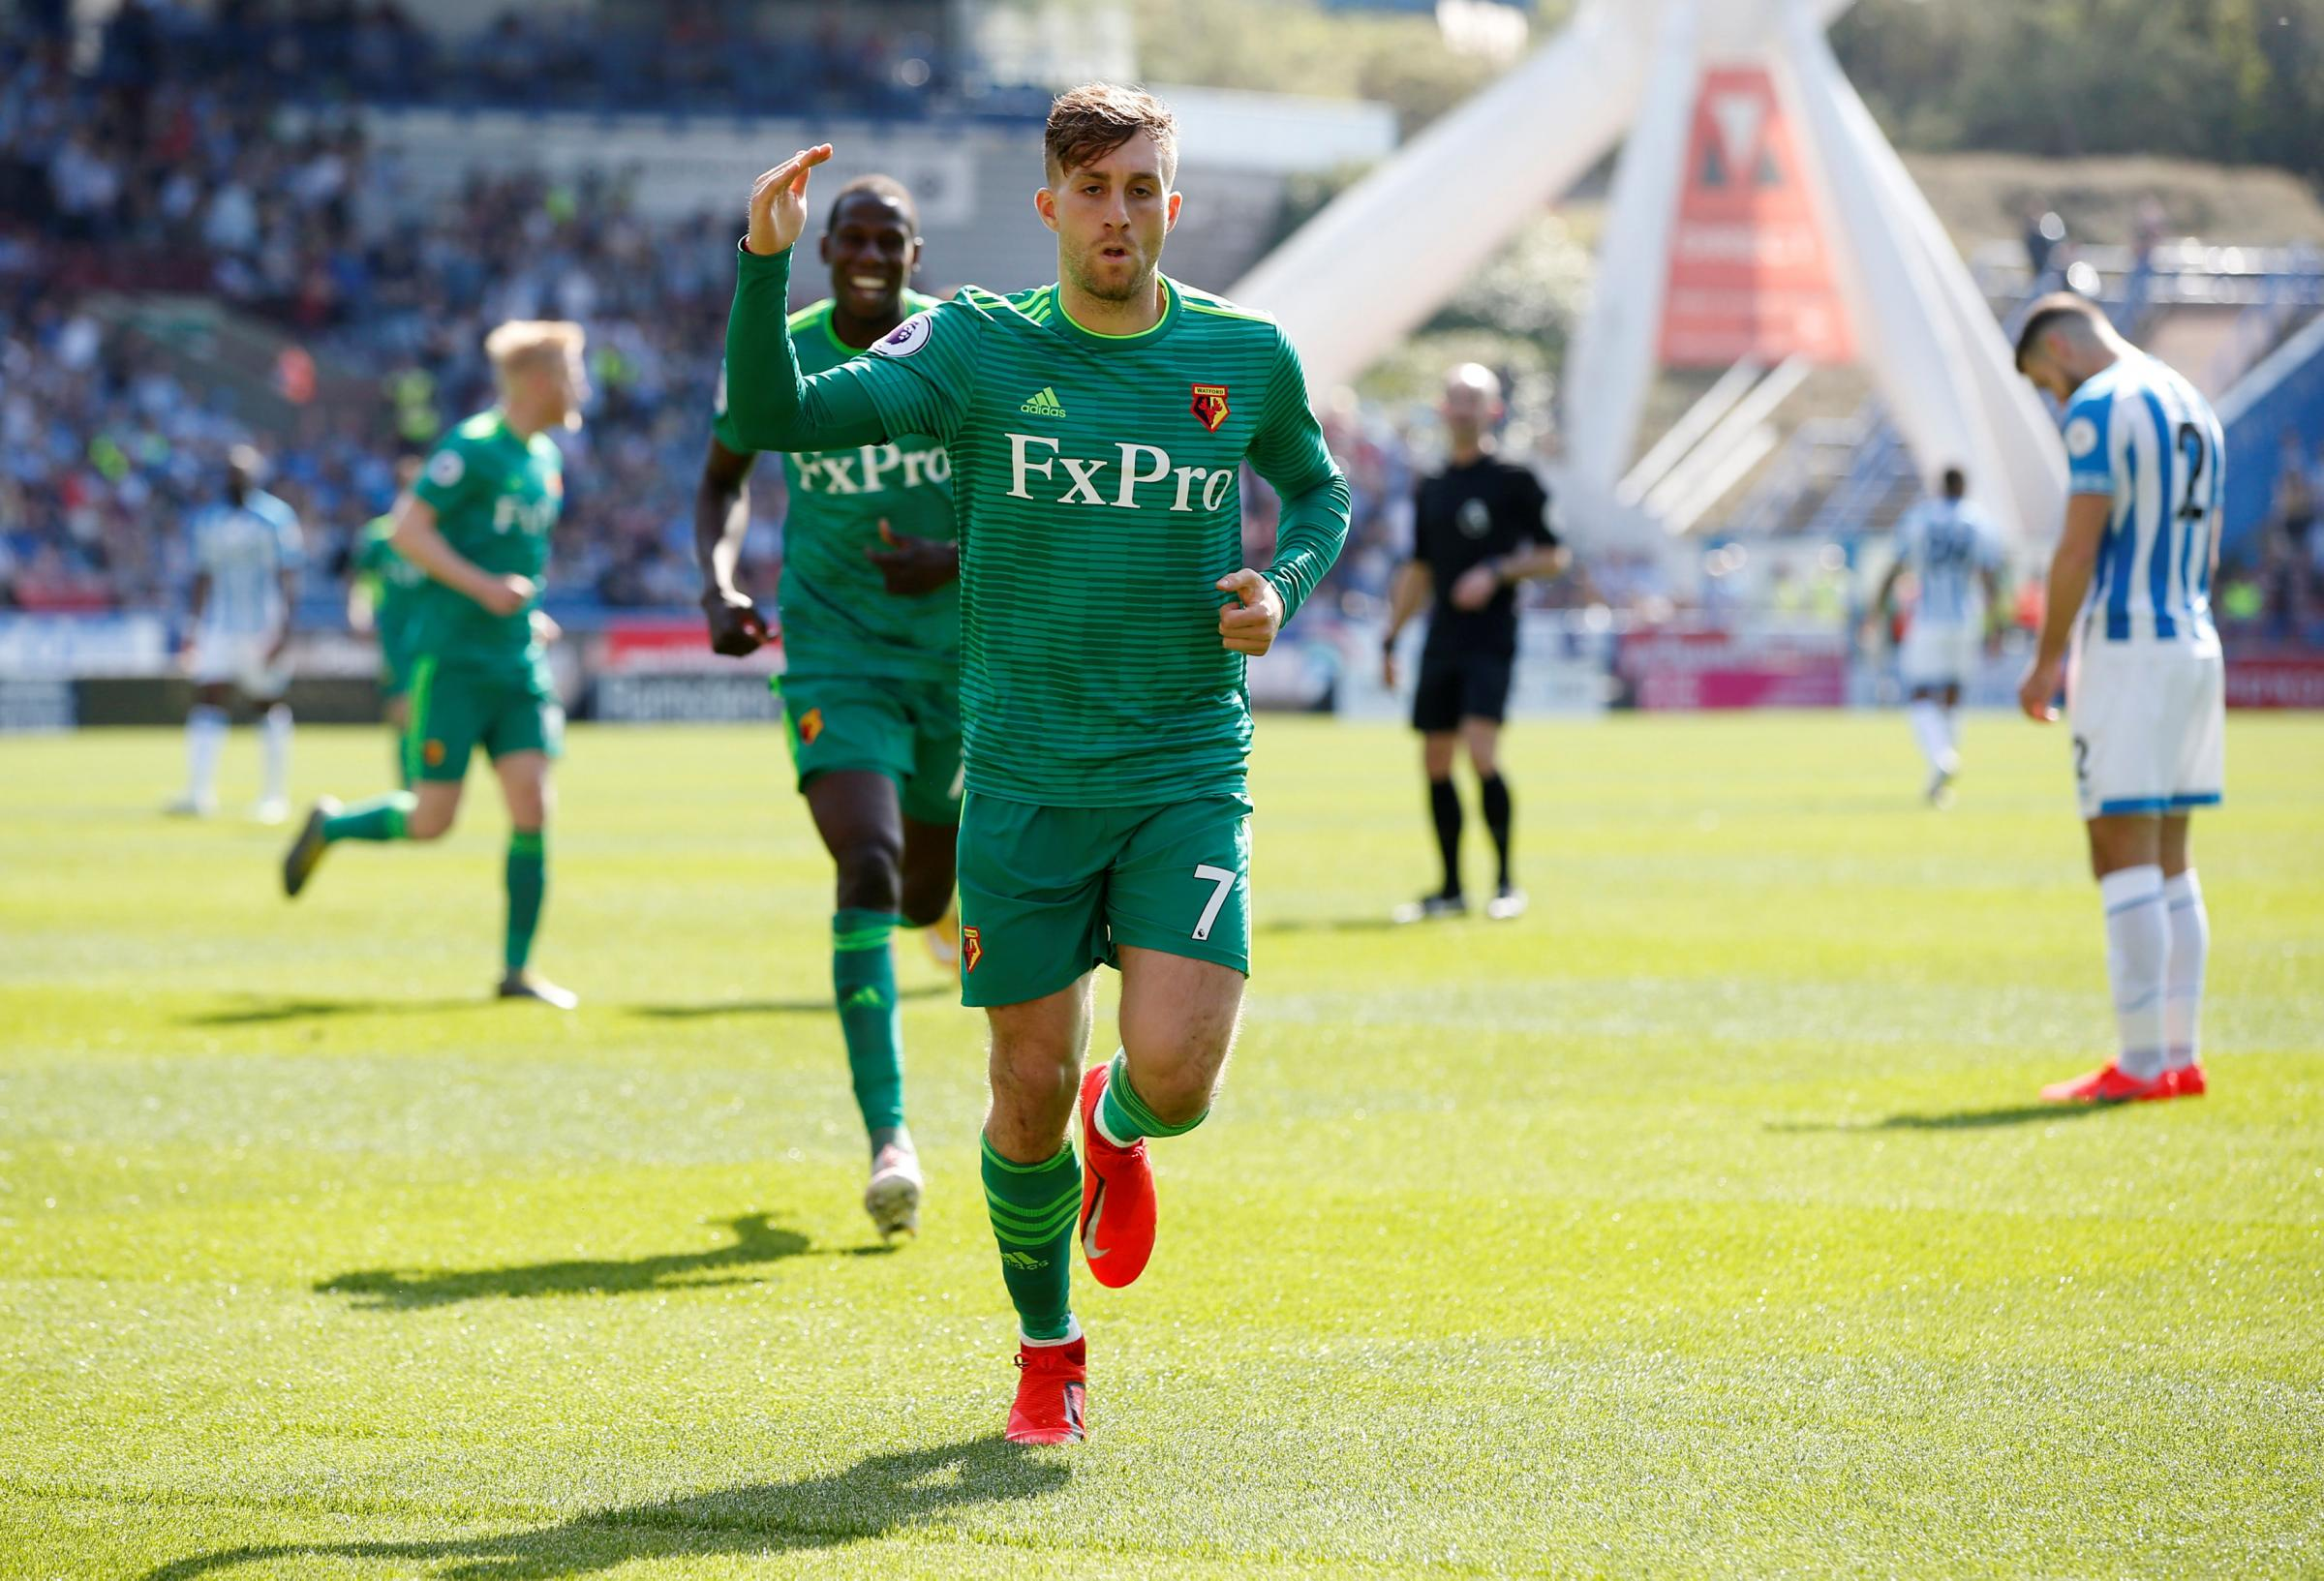 Deulofeu could be on to best season ever